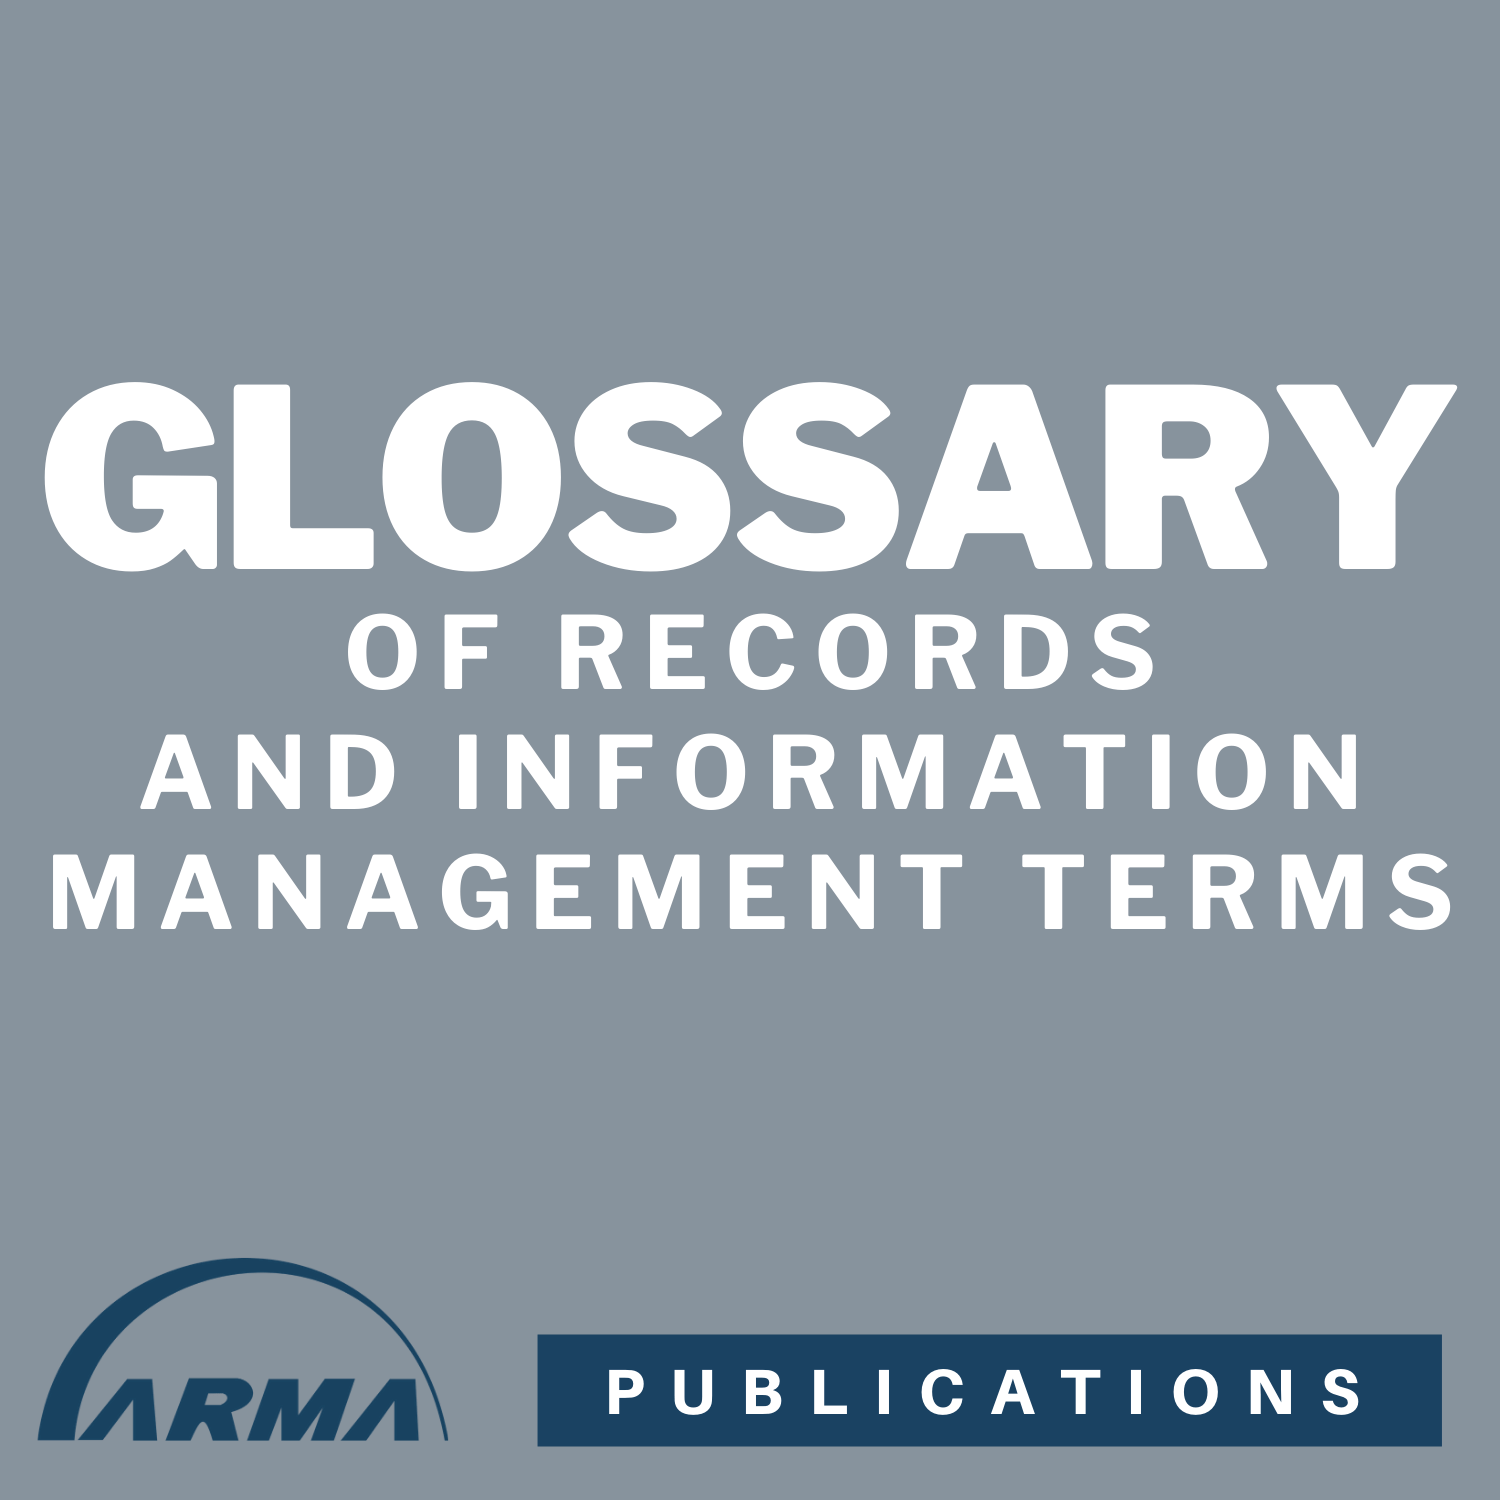 Glossary of Records and Information Management Terms